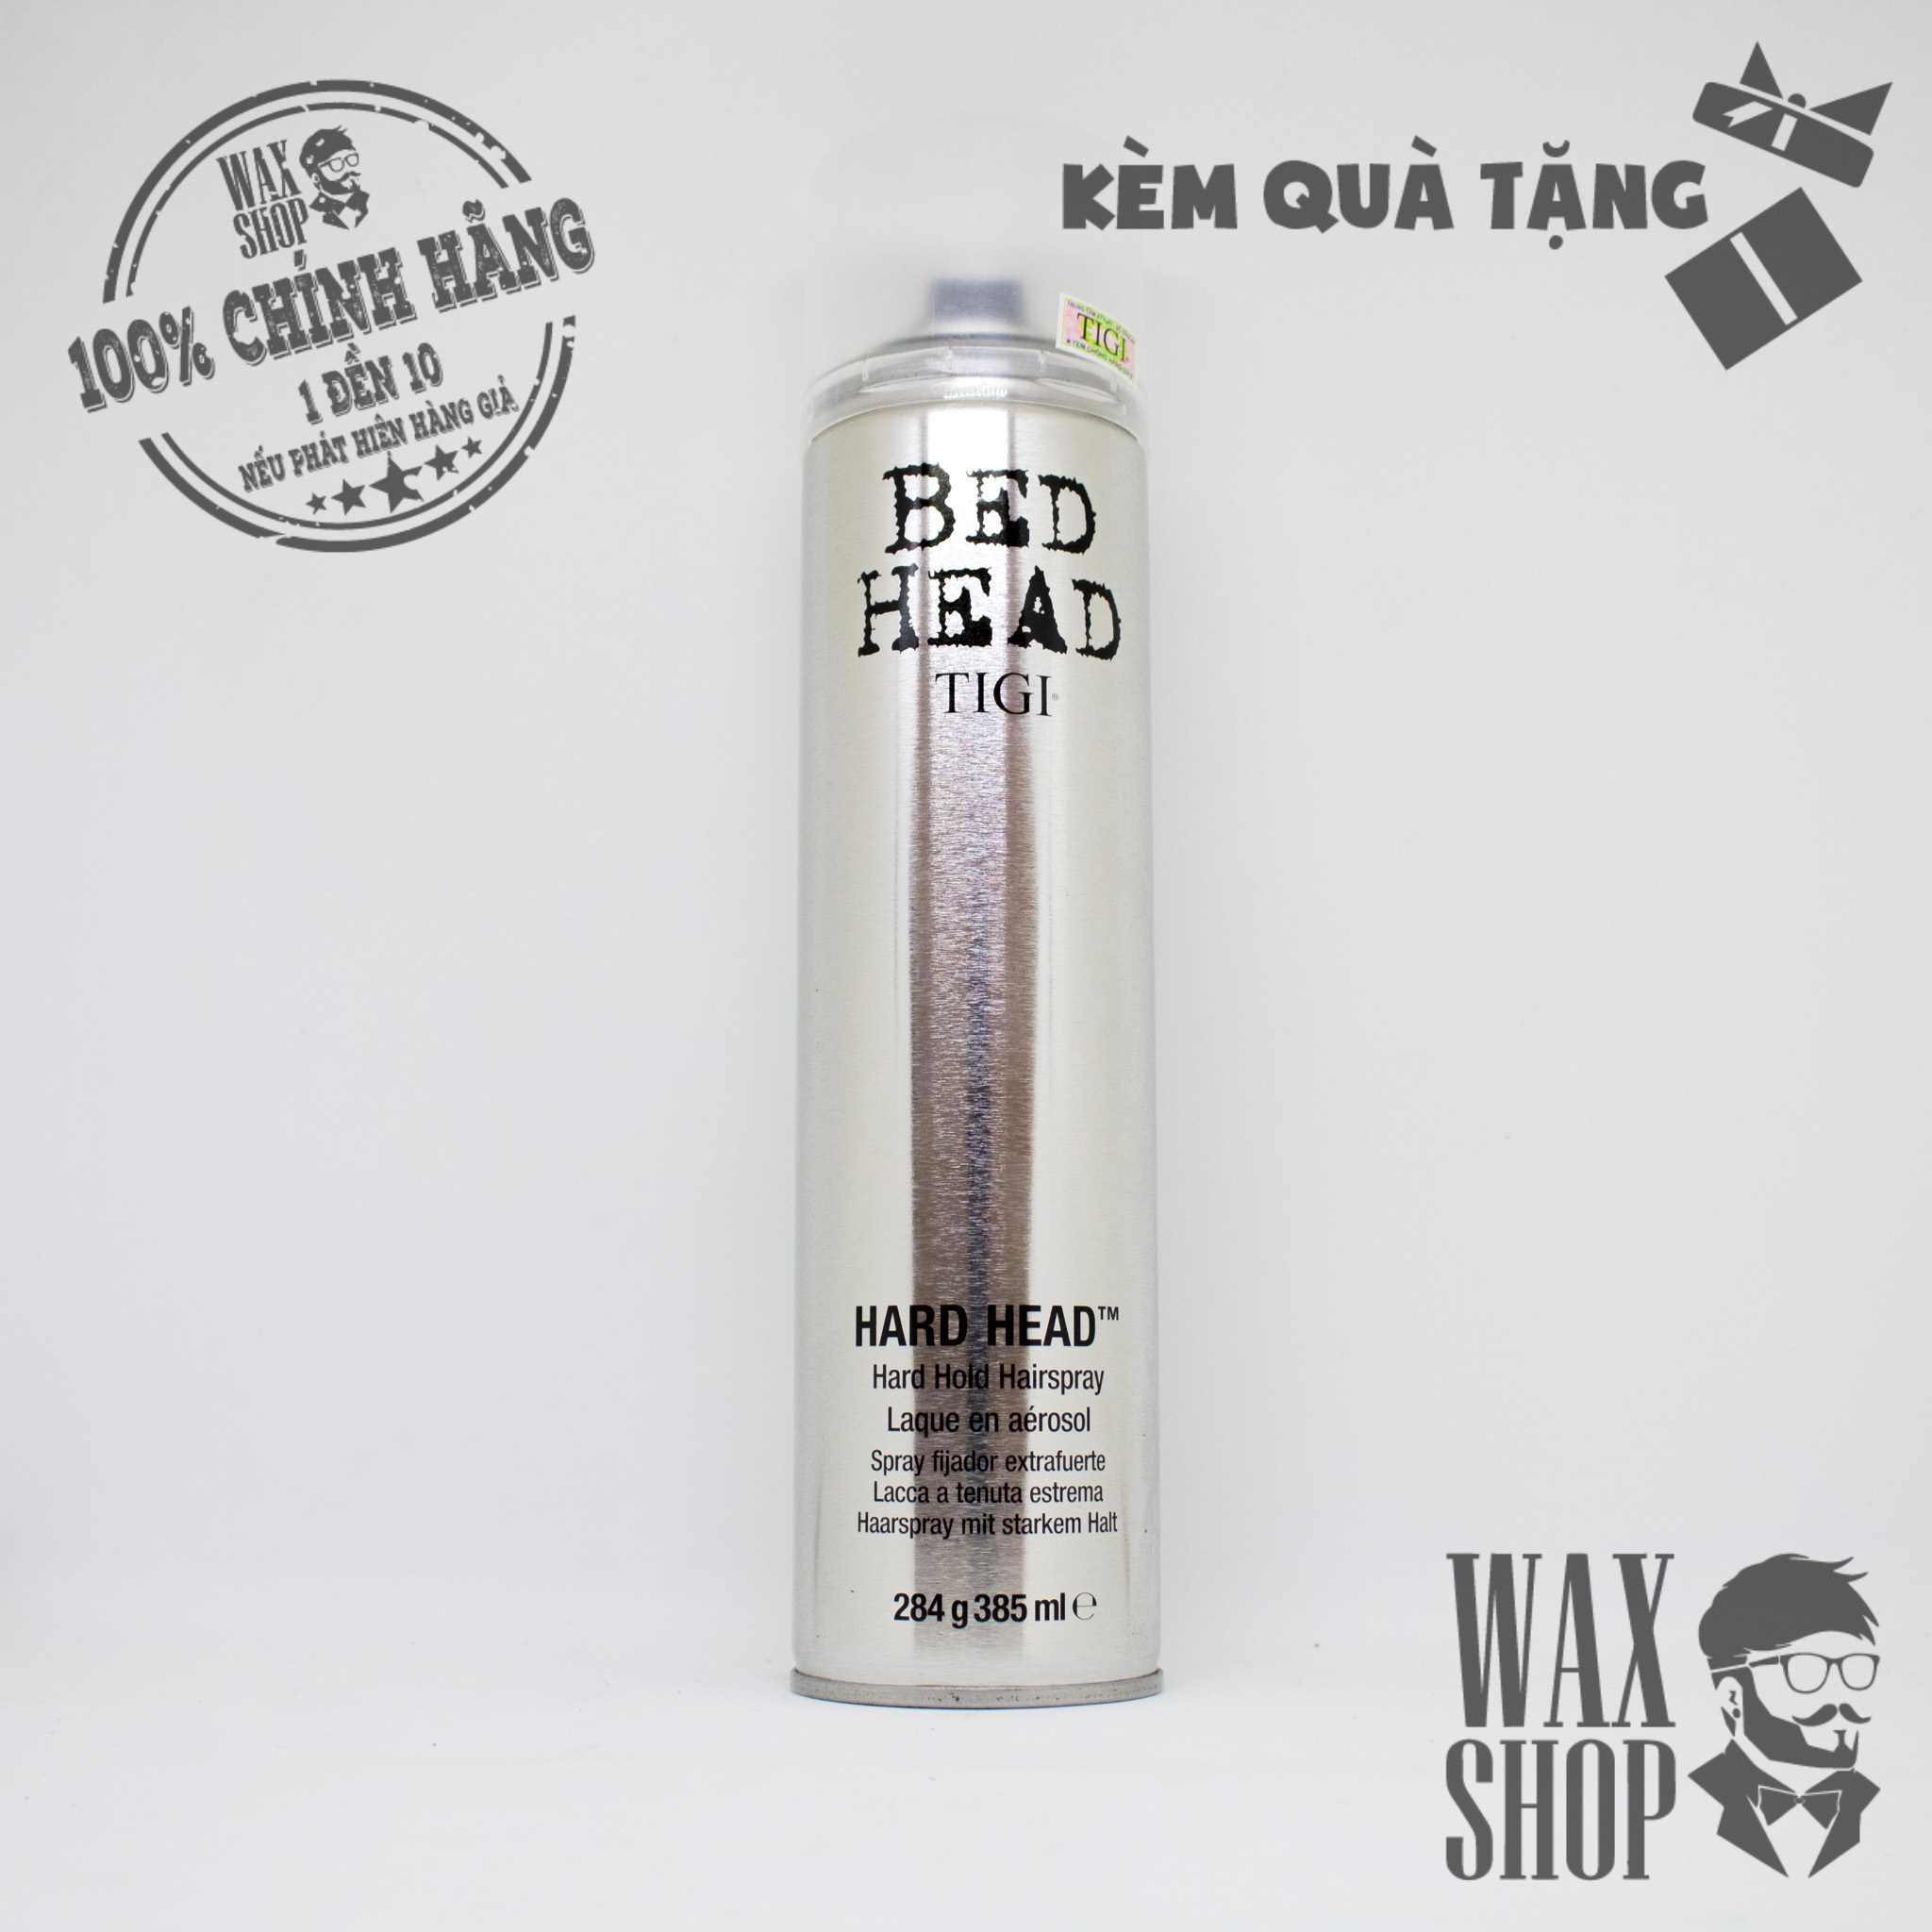 Hard Head - TiGi Bed Head